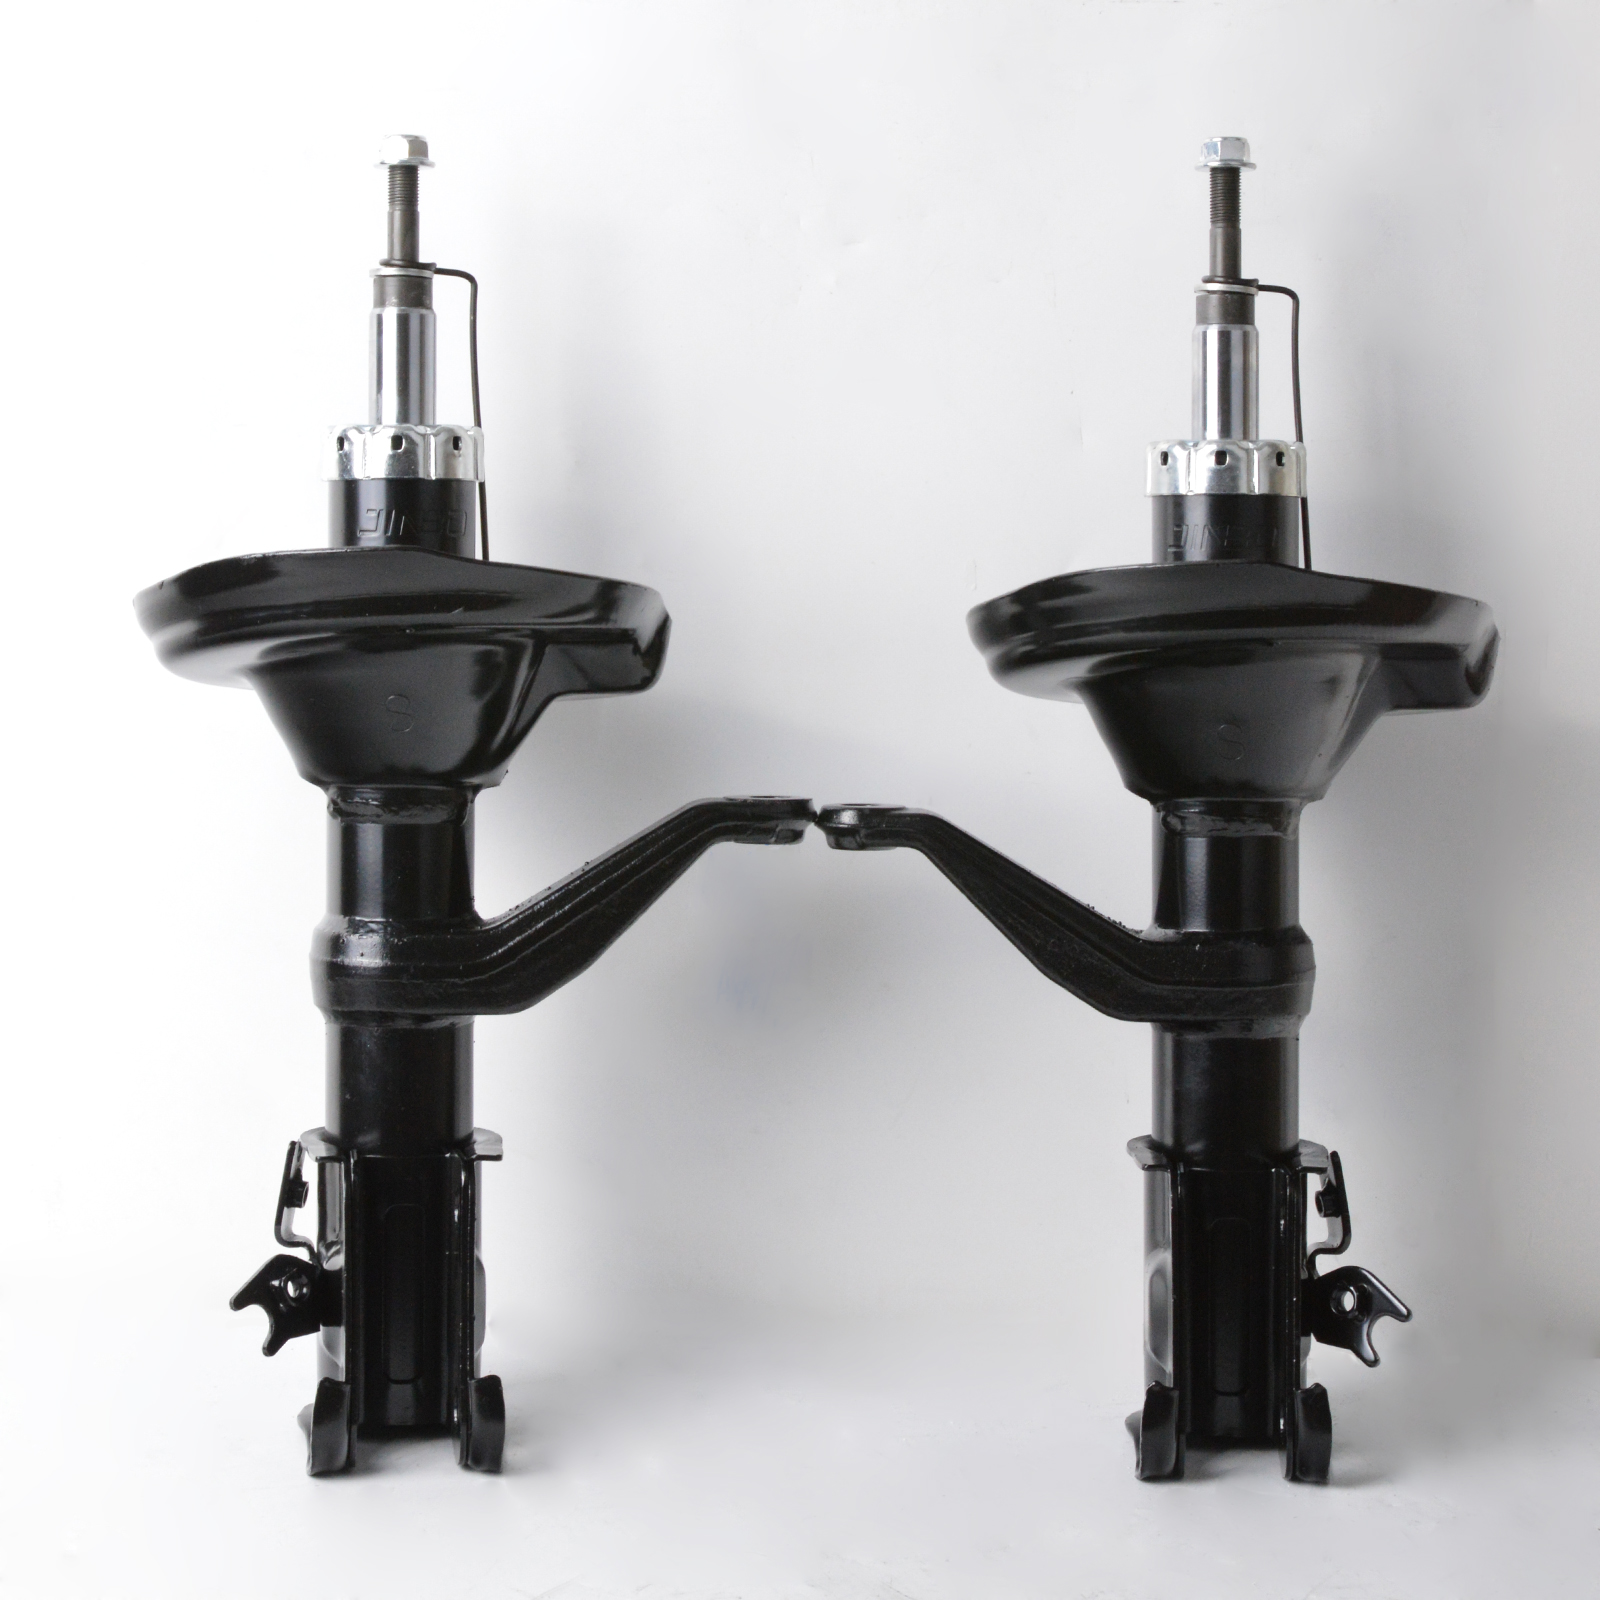 New Shock Absorber and Strut Assembly for Acura MDX 2001-2005